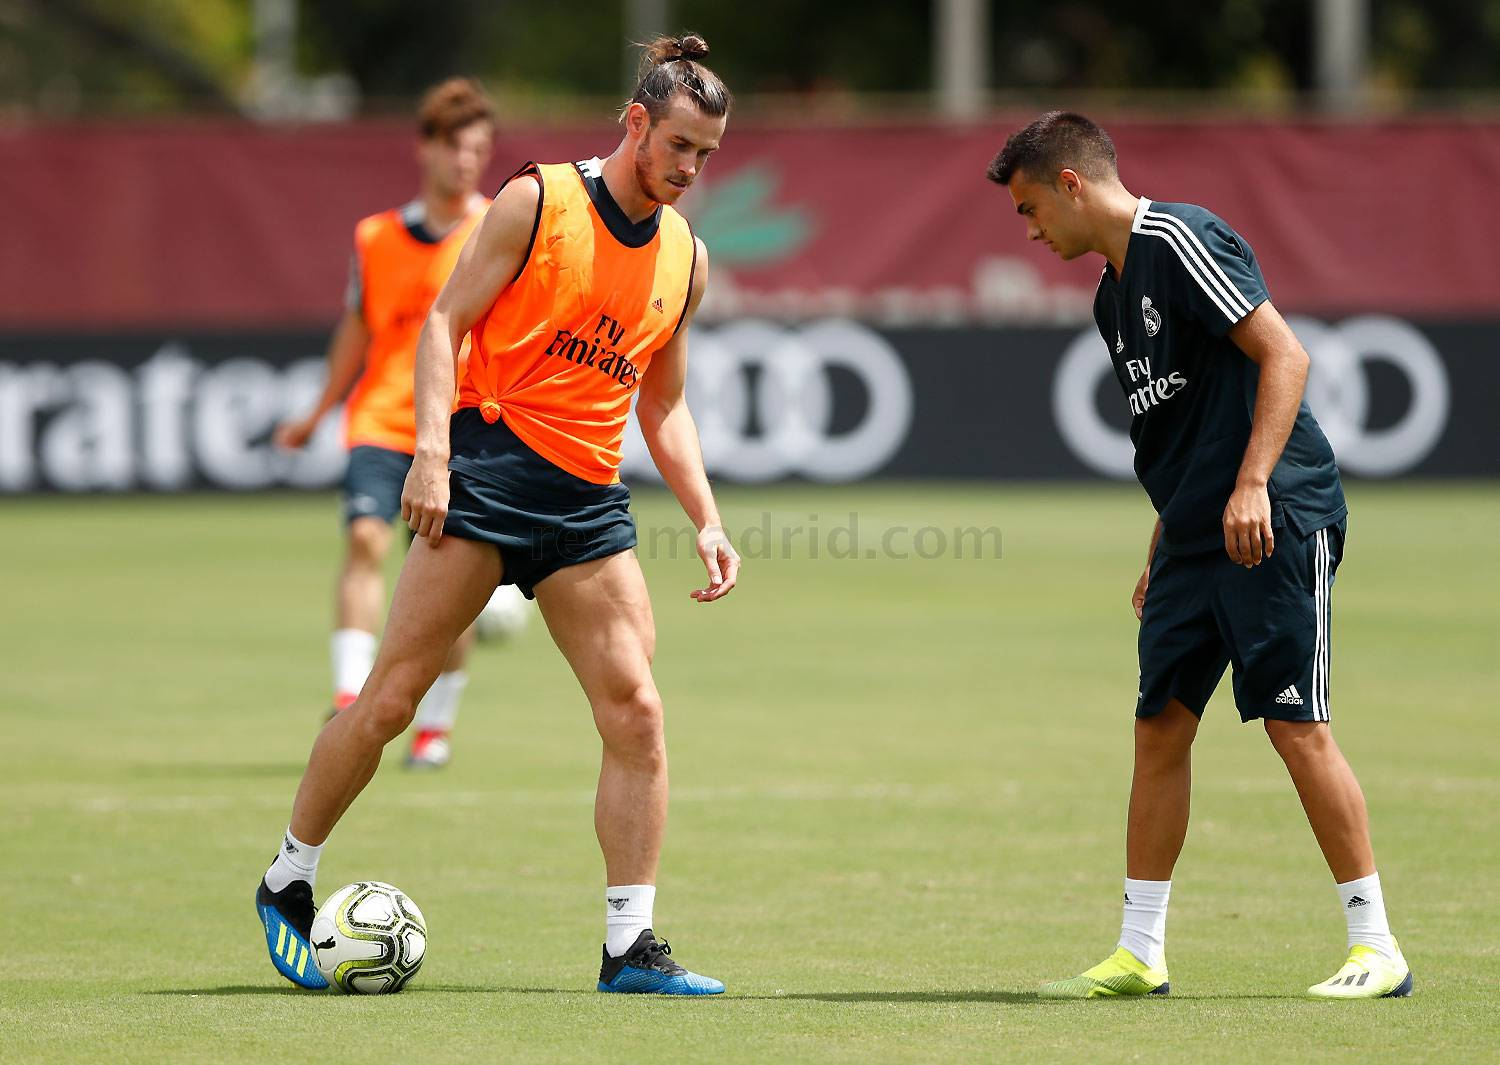 Real Madrid - Entrenamiento del Real Madrid en la Universidad de Barry - 31-07-2018